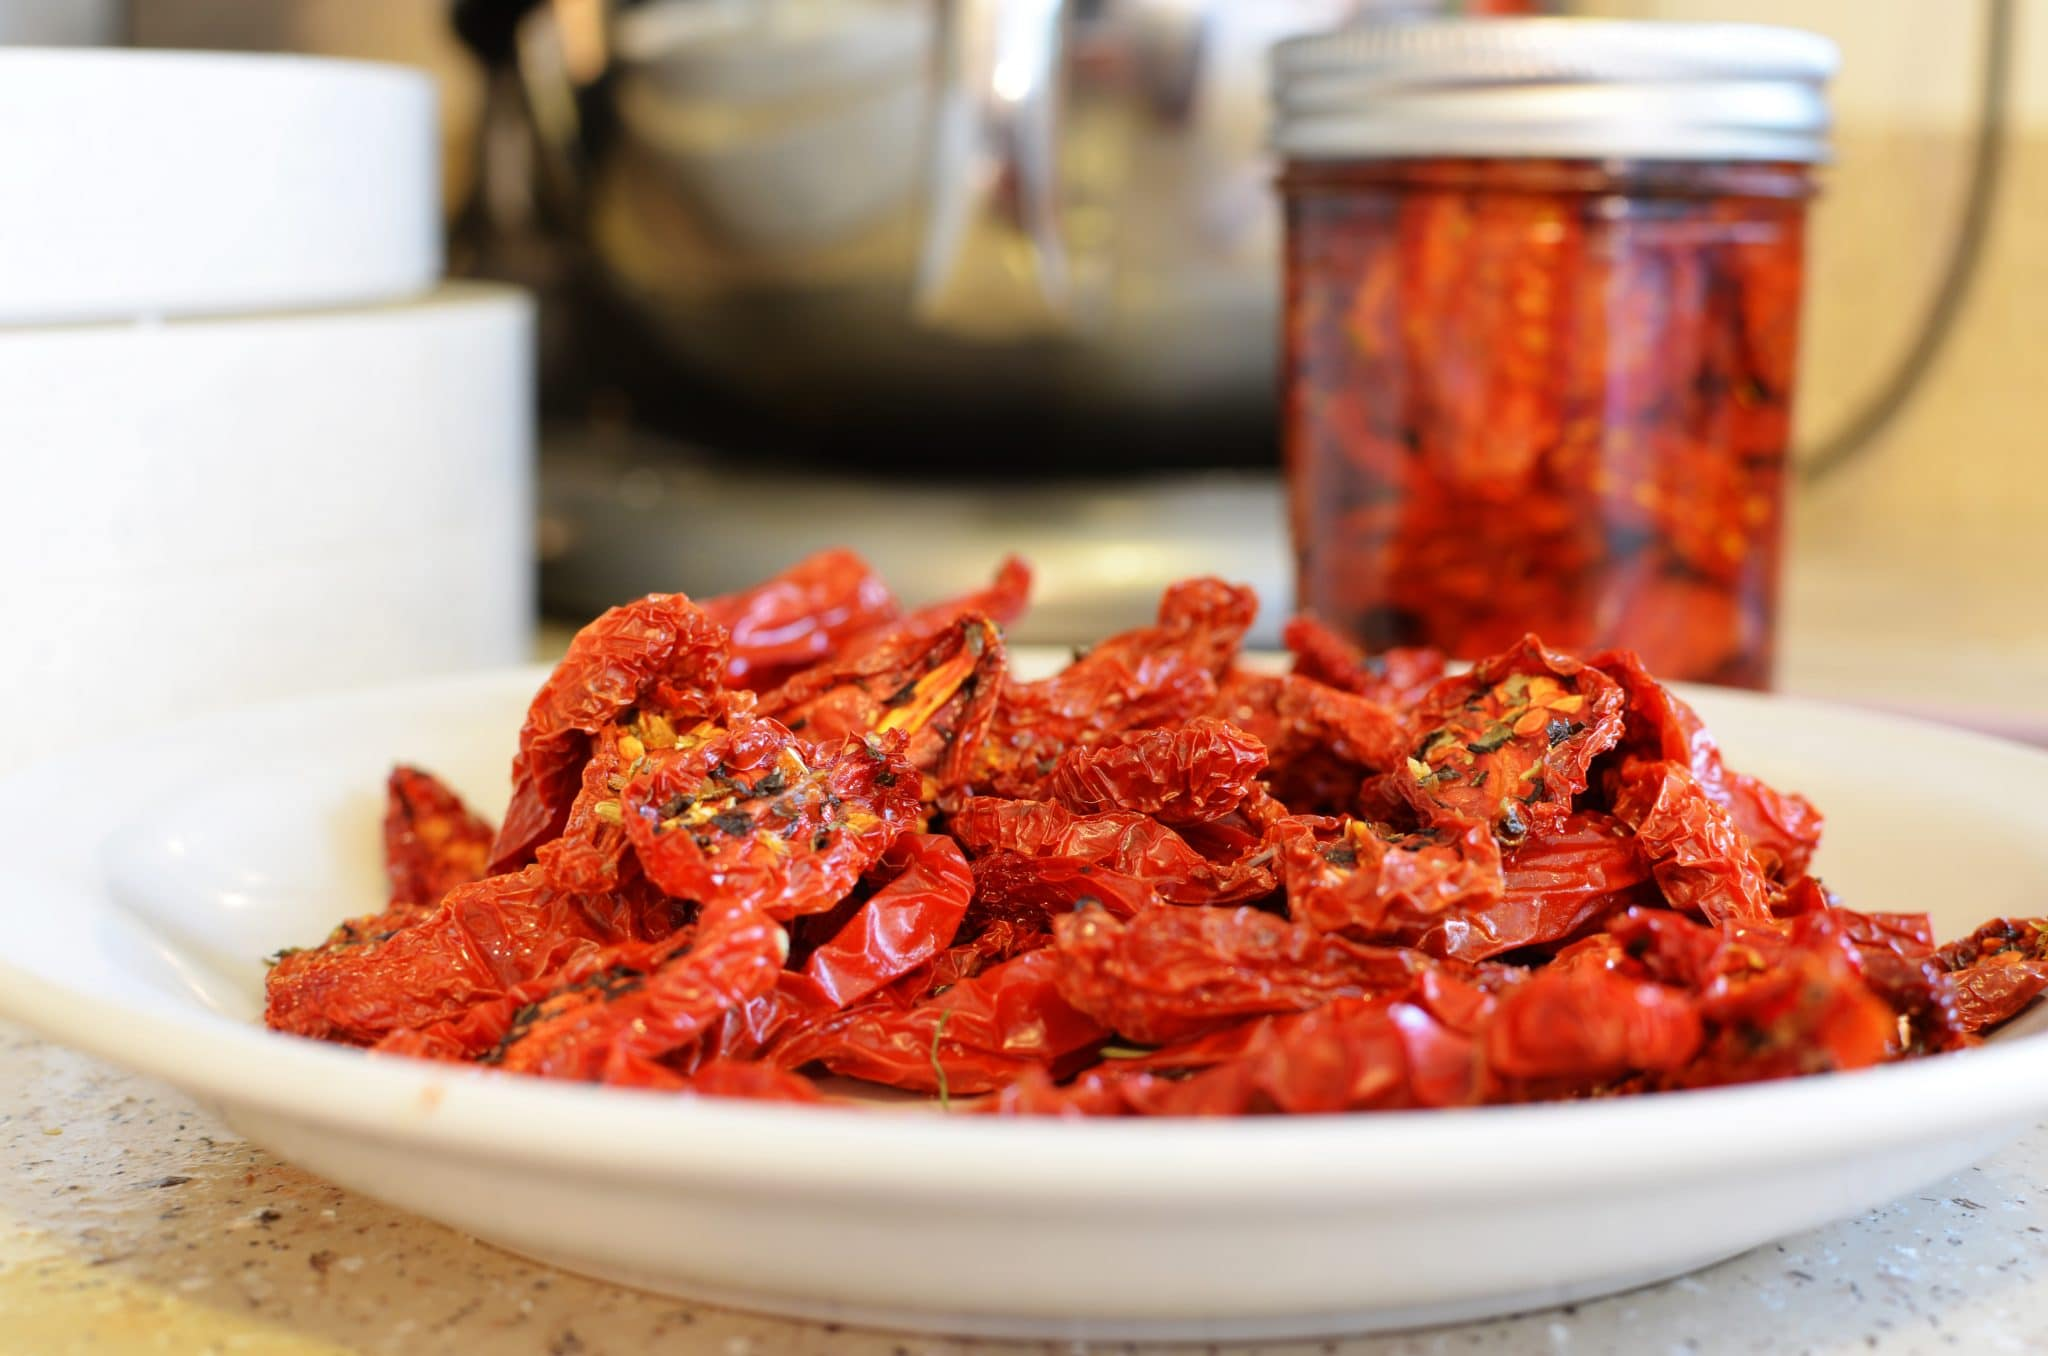 How To: Sun Dried Tomatoes - Like Mother, Like Daughter